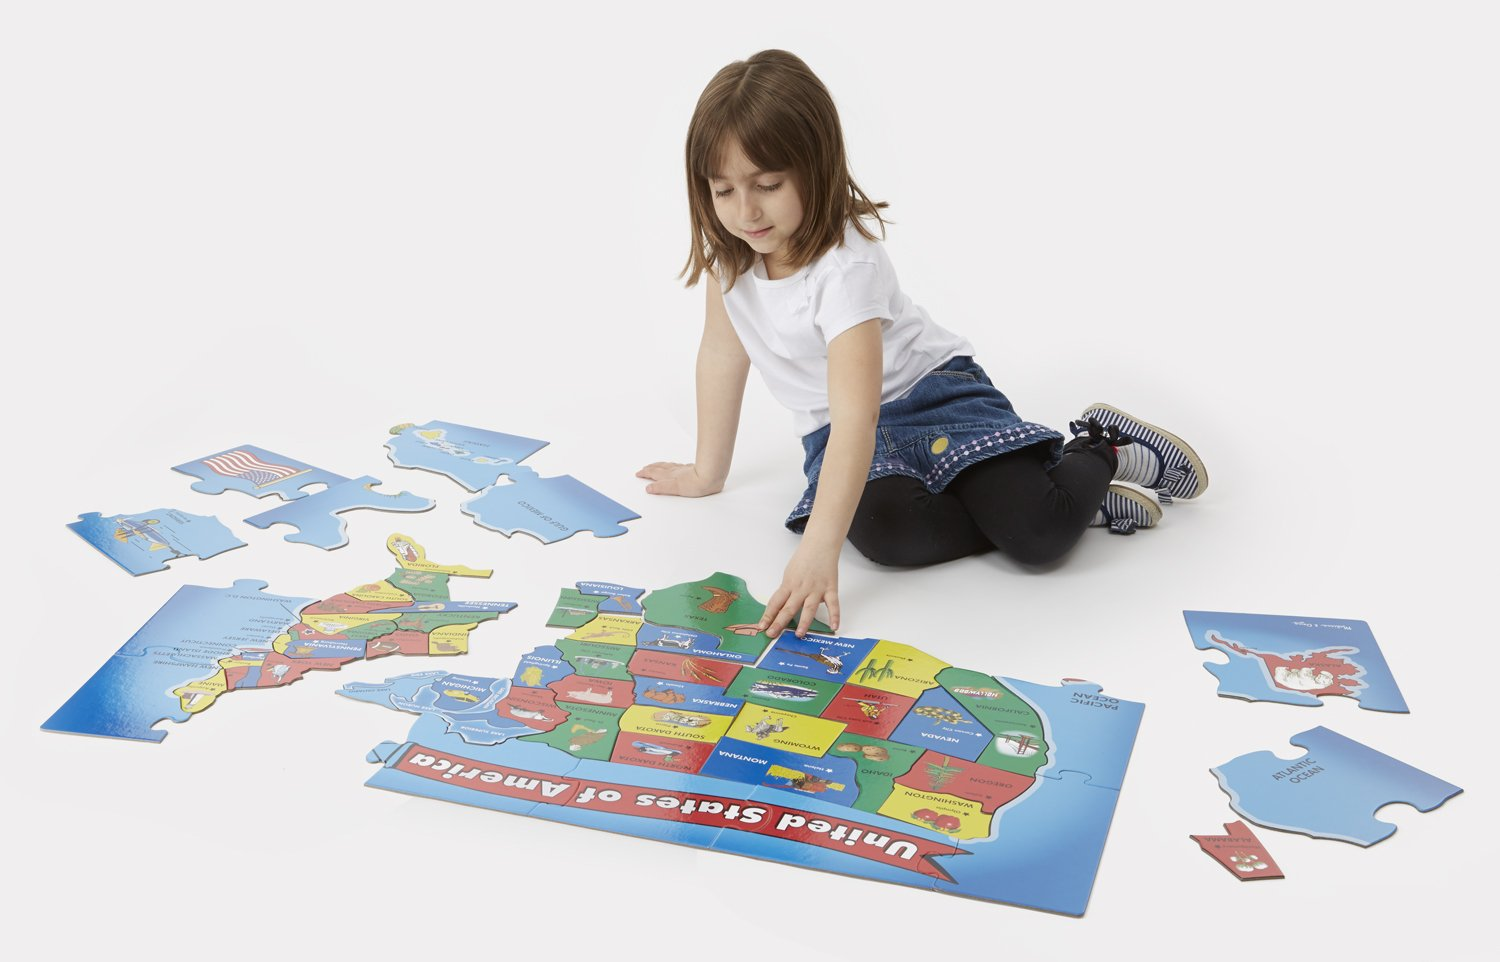 Amazon.com: Melissa U0026 Doug USA Map Floor Puzzle (51 Pcs, 2 X 3 Feet):  Melissa U0026 Doug: Toys U0026 Games